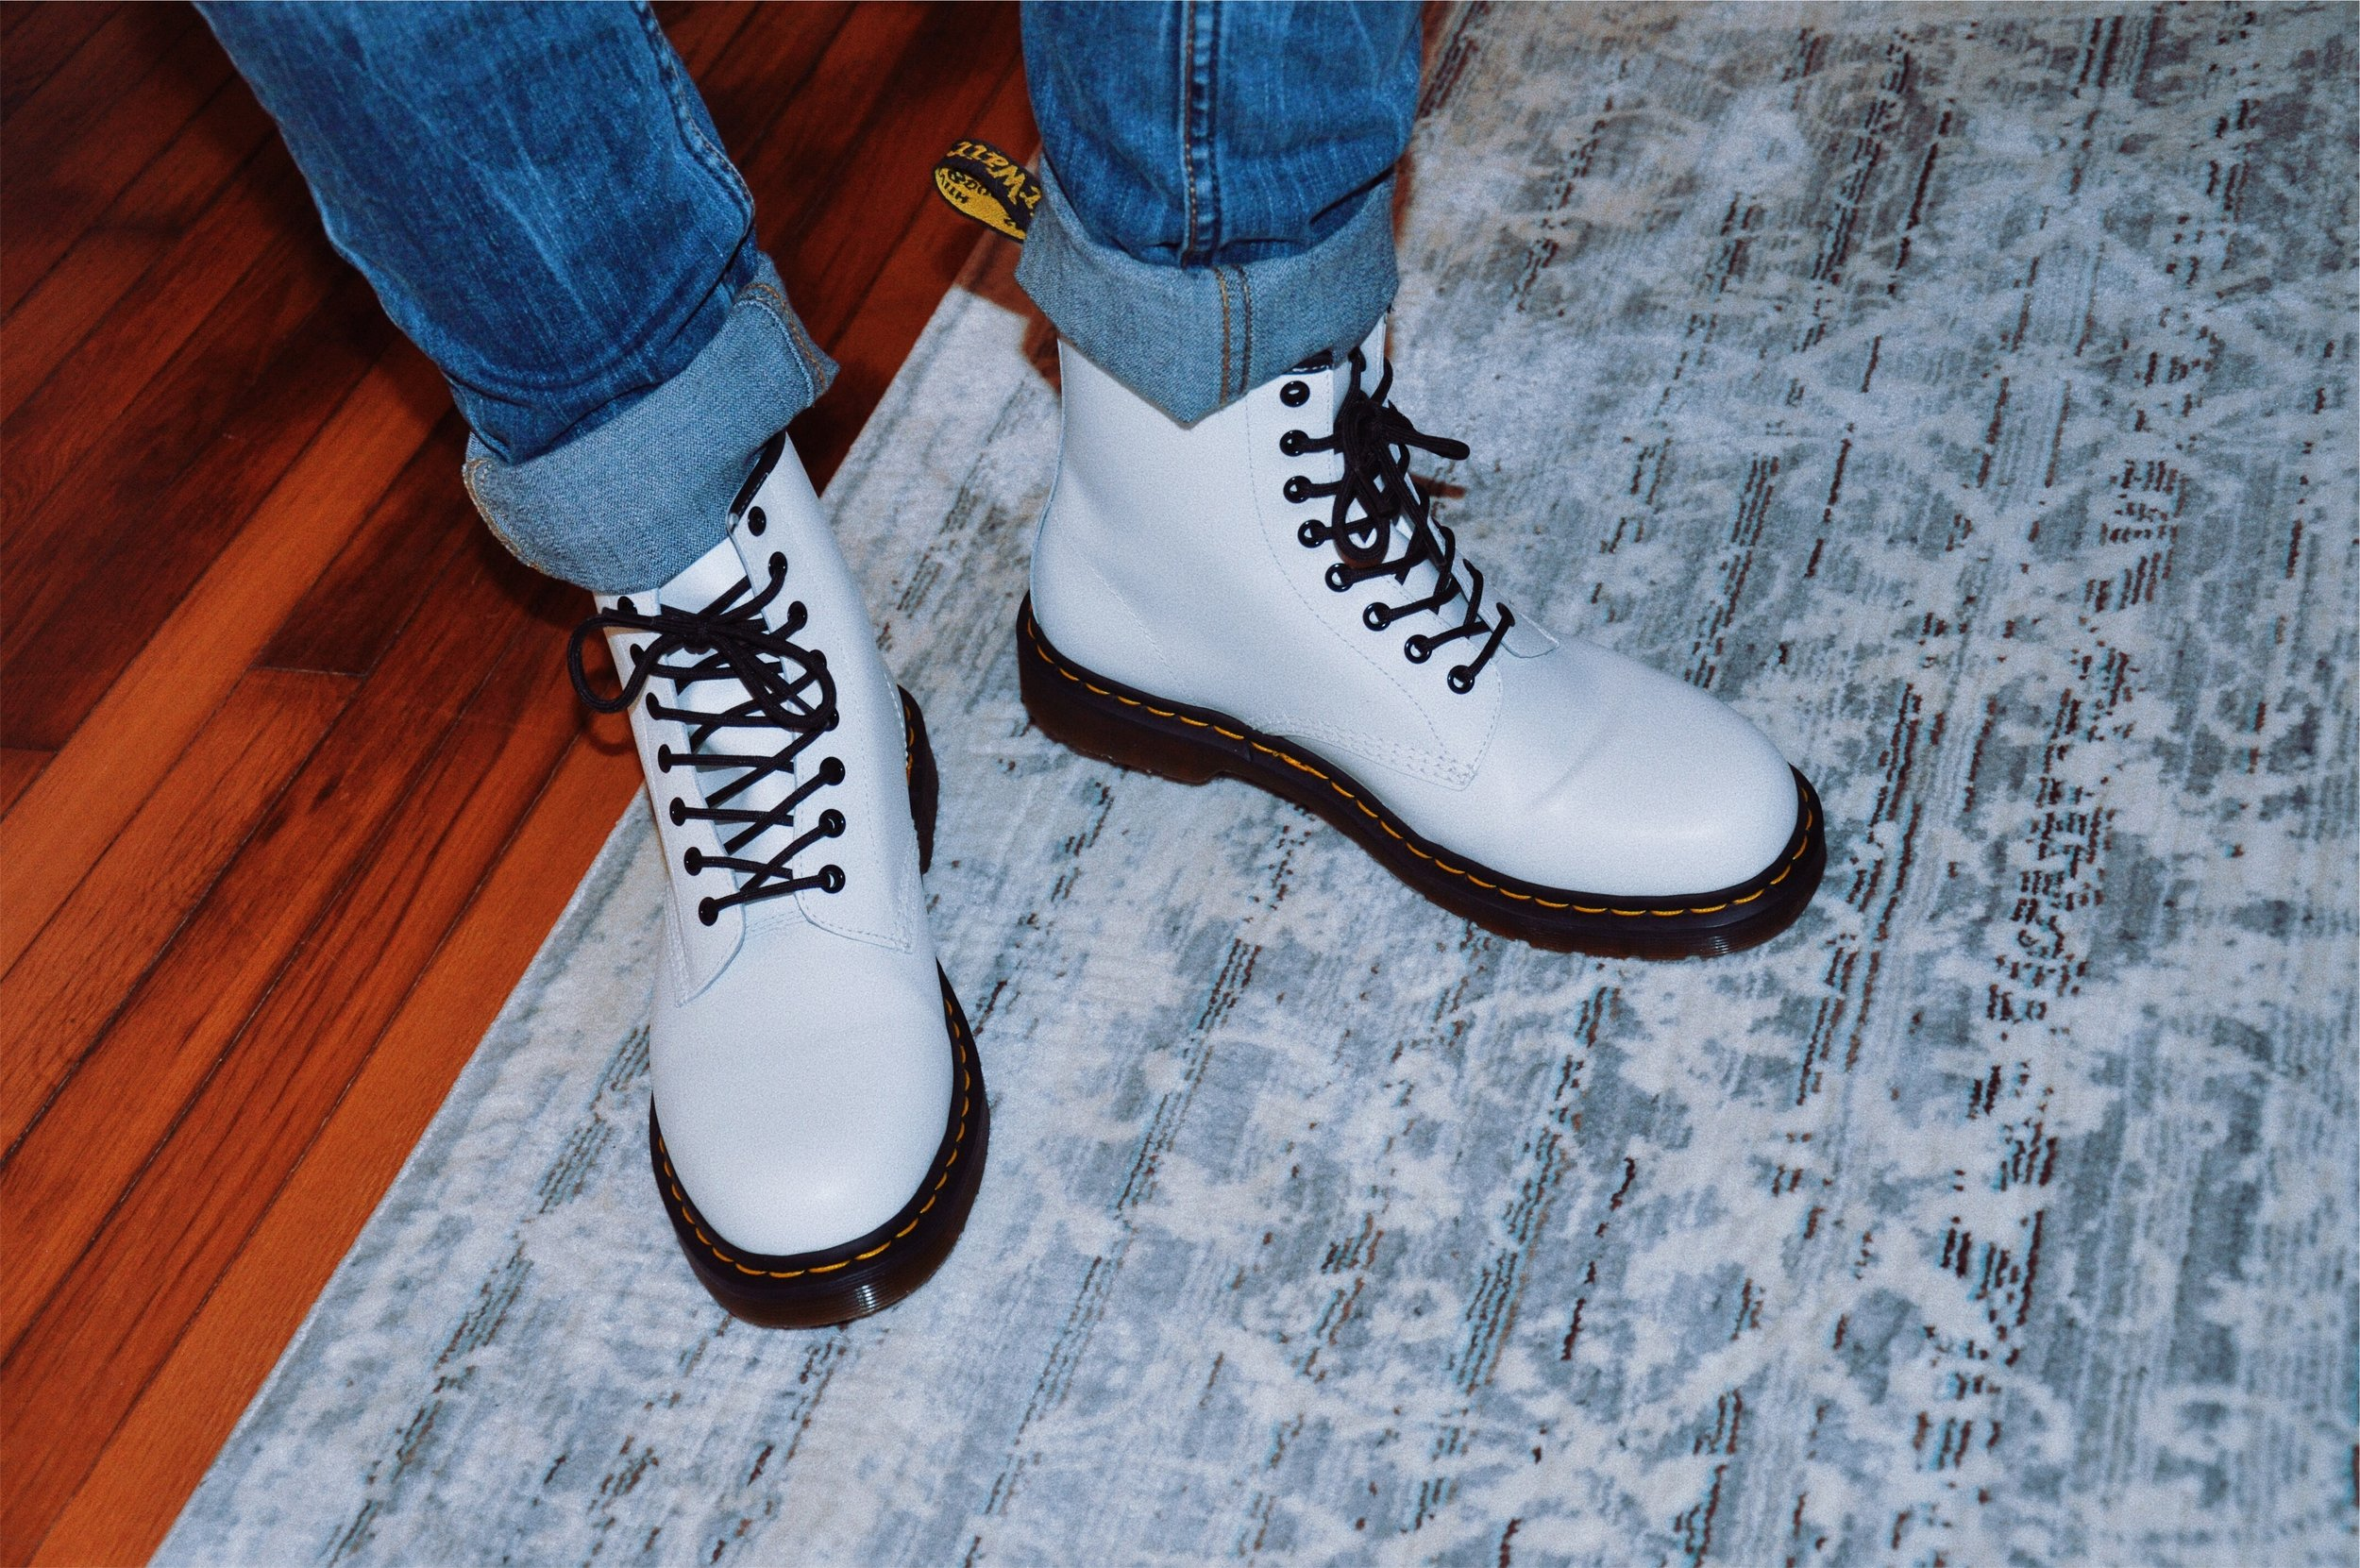 You can't go wrong with a pair of white Docs!